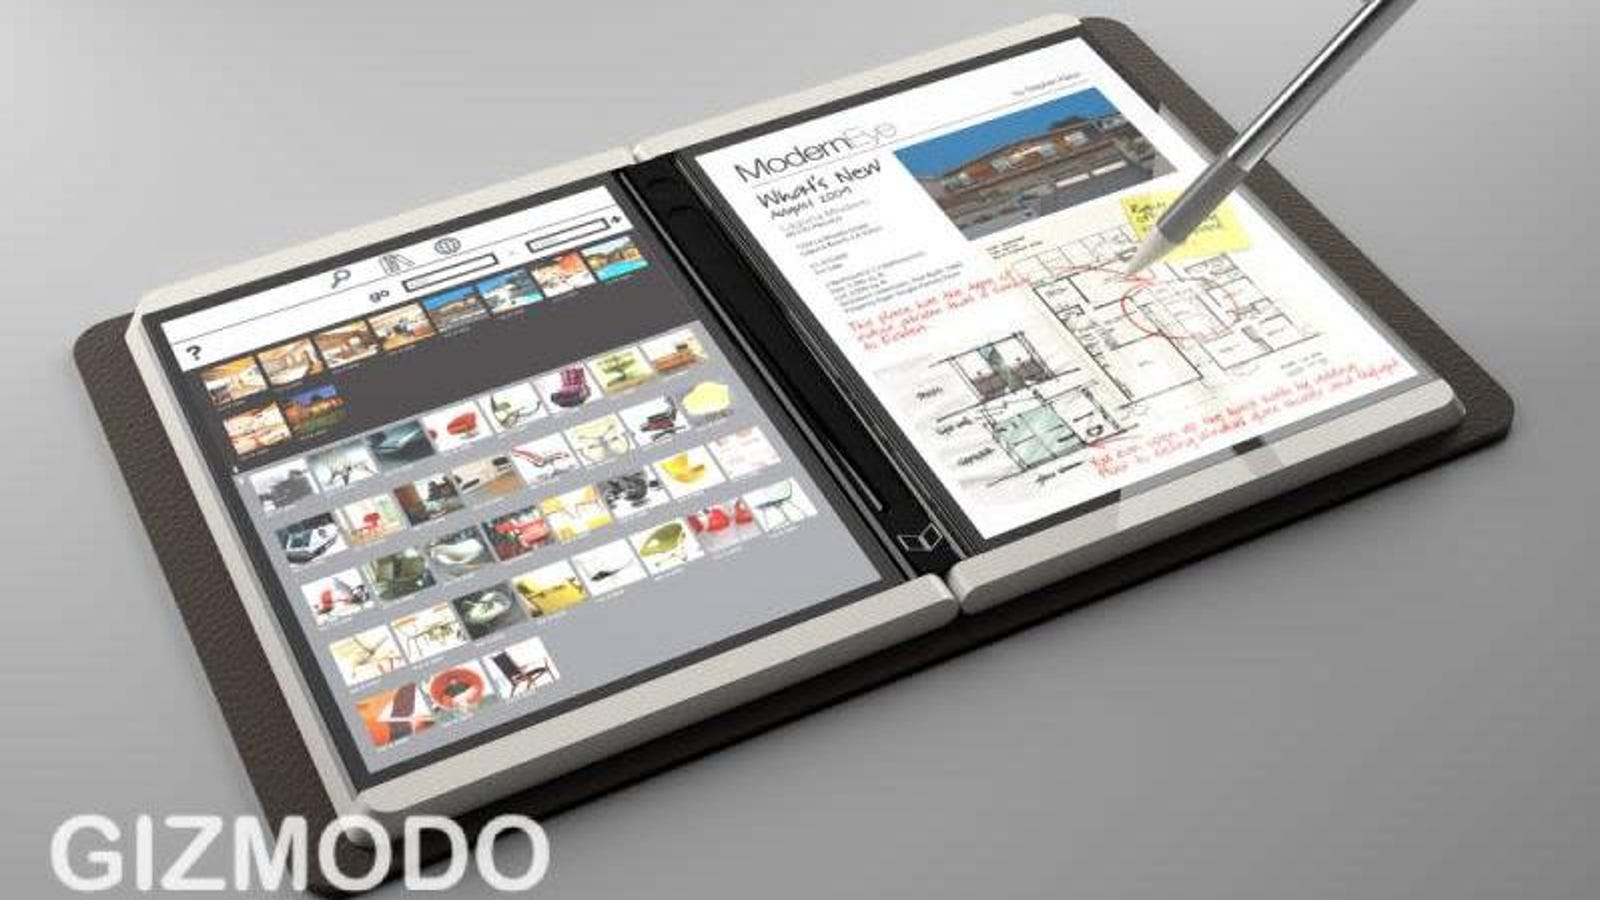 QnA VBage Report: Microsoft Is Cooking Up a Dual-Screen Surface With Support for Android Apps